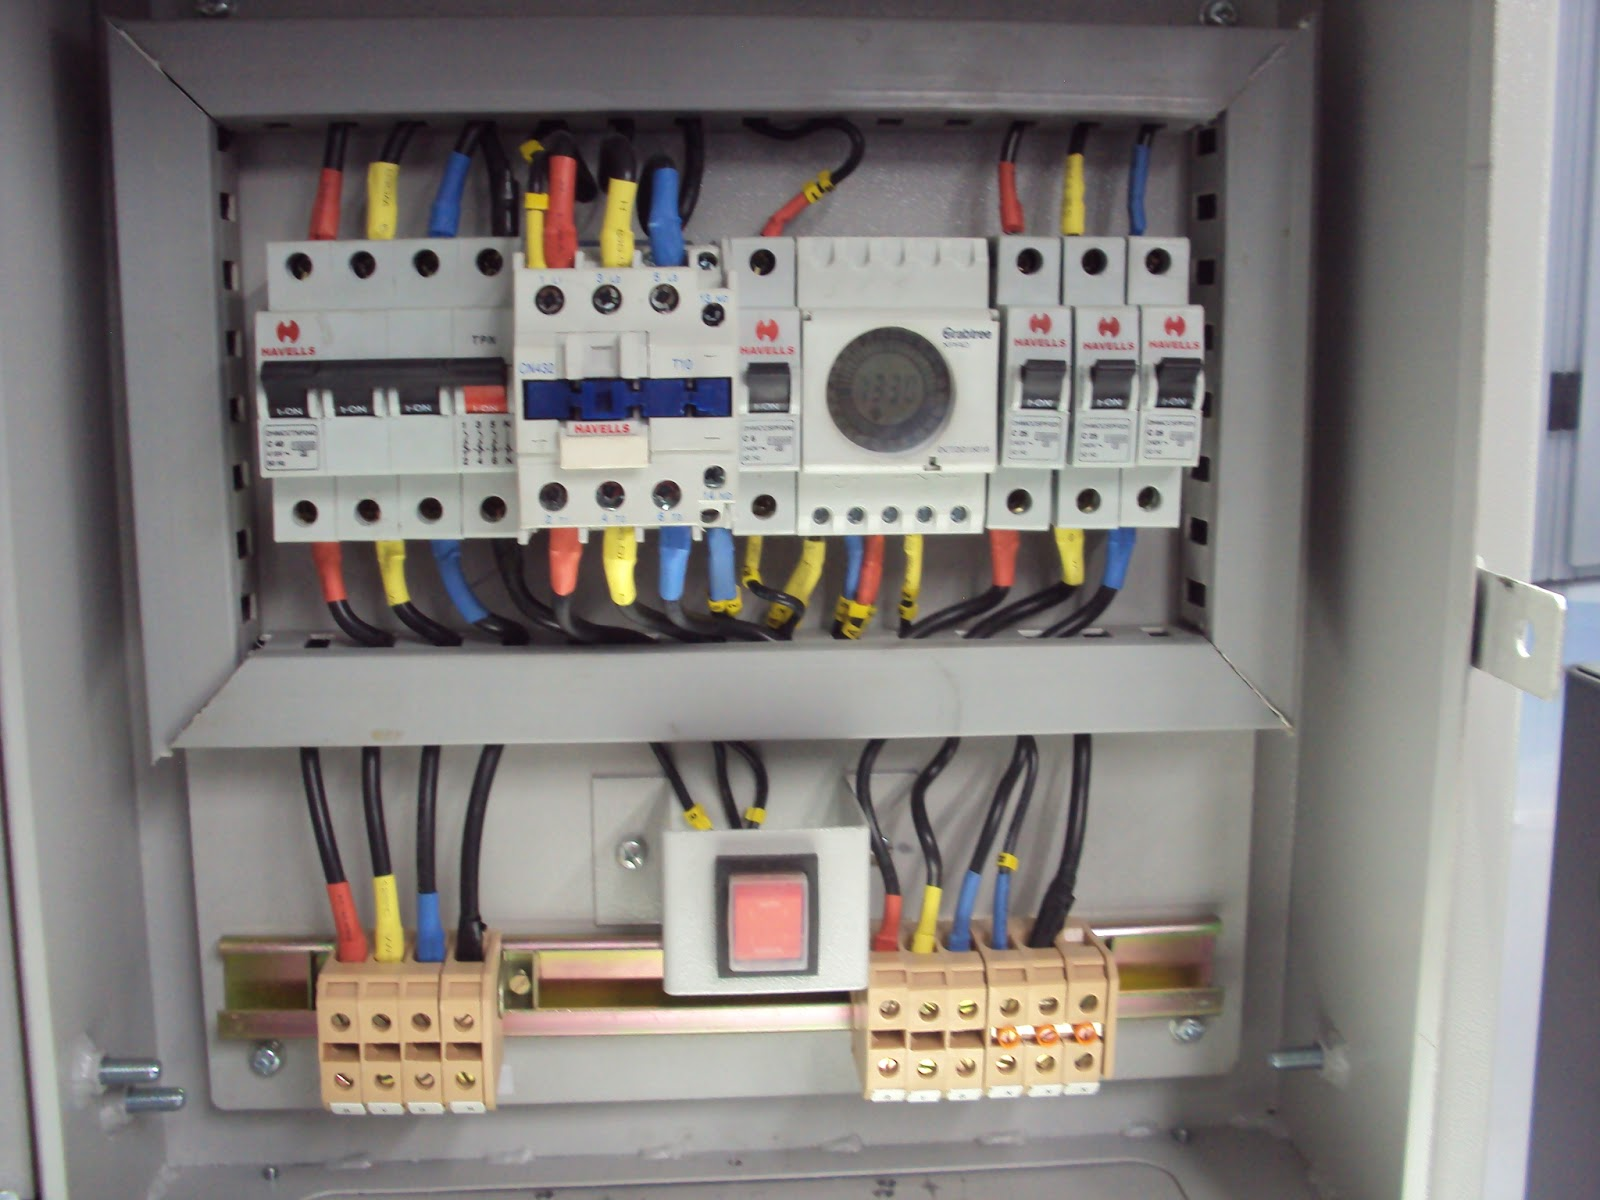 hight resolution of power engineering electrical wiring and test certificate basic electrical wiring test